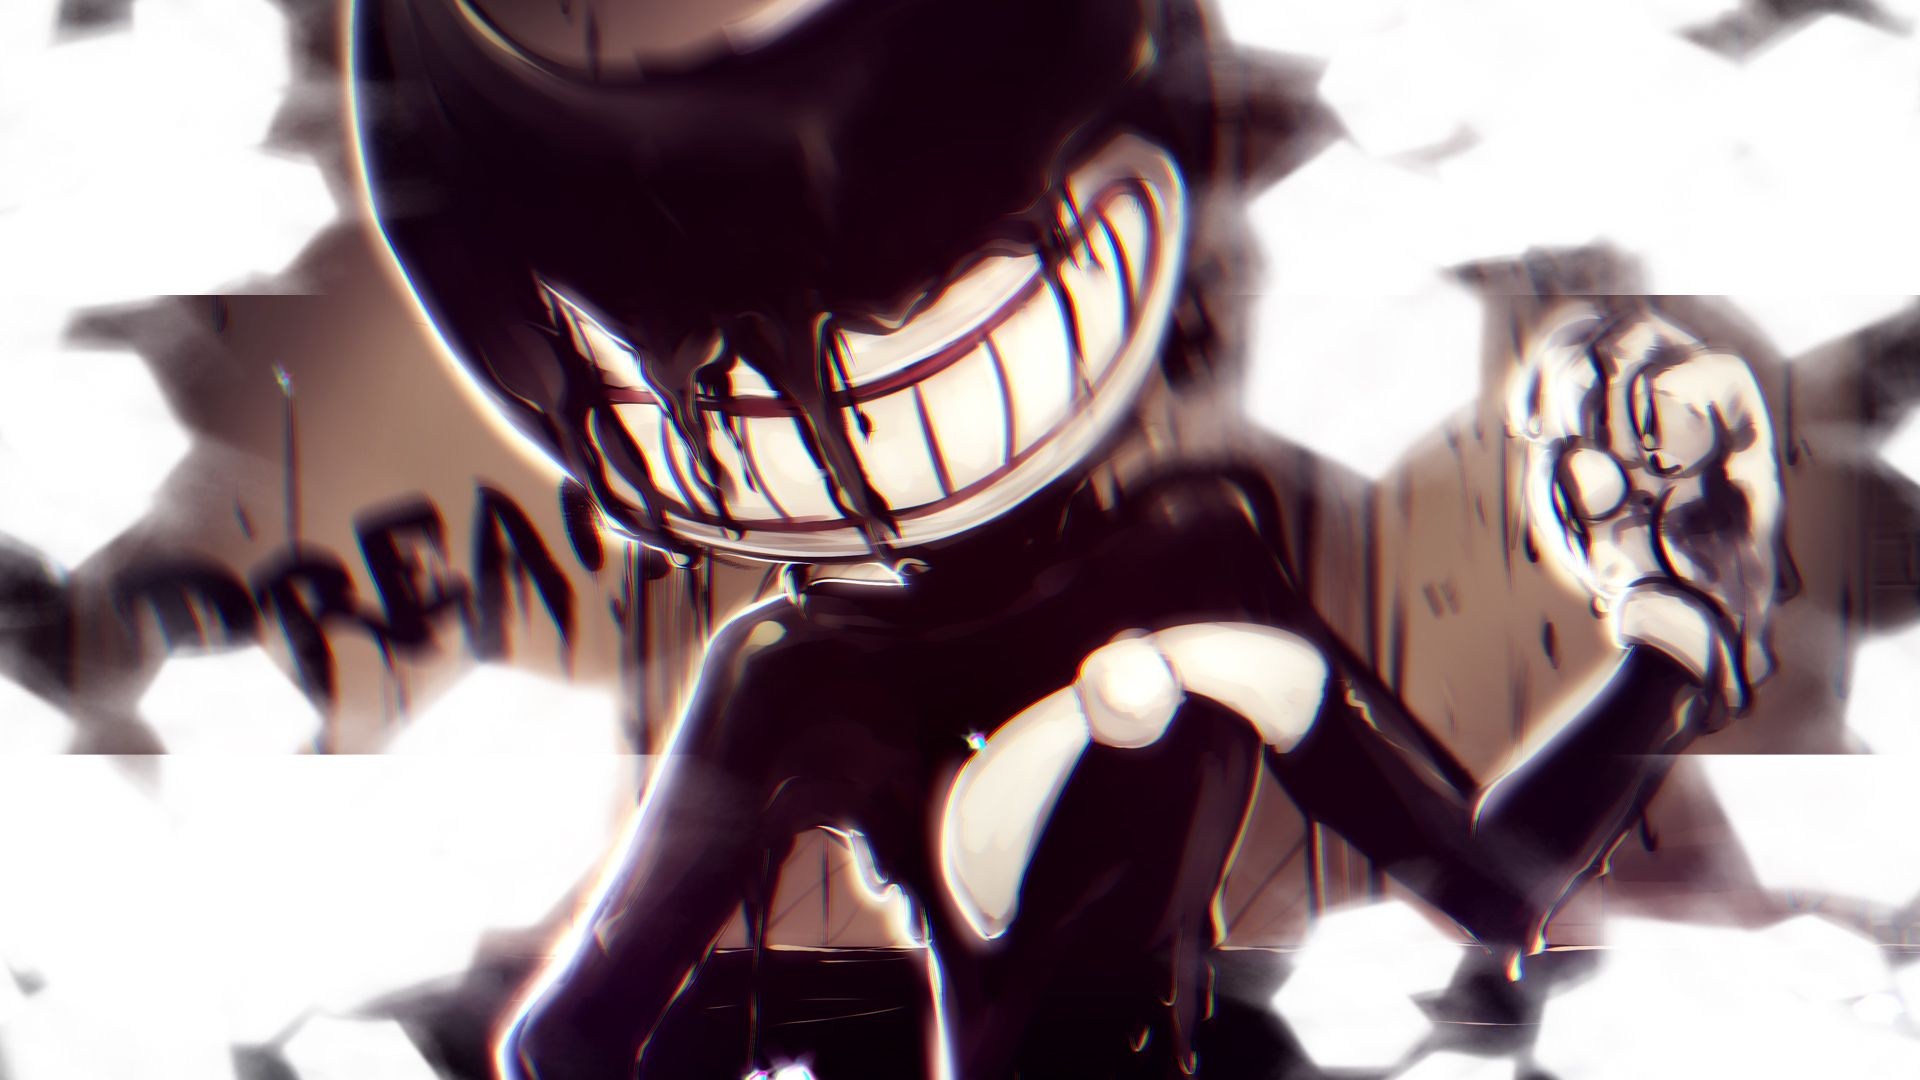 Download This Bendy The Ink Demon Wallpaper With Images Bendy